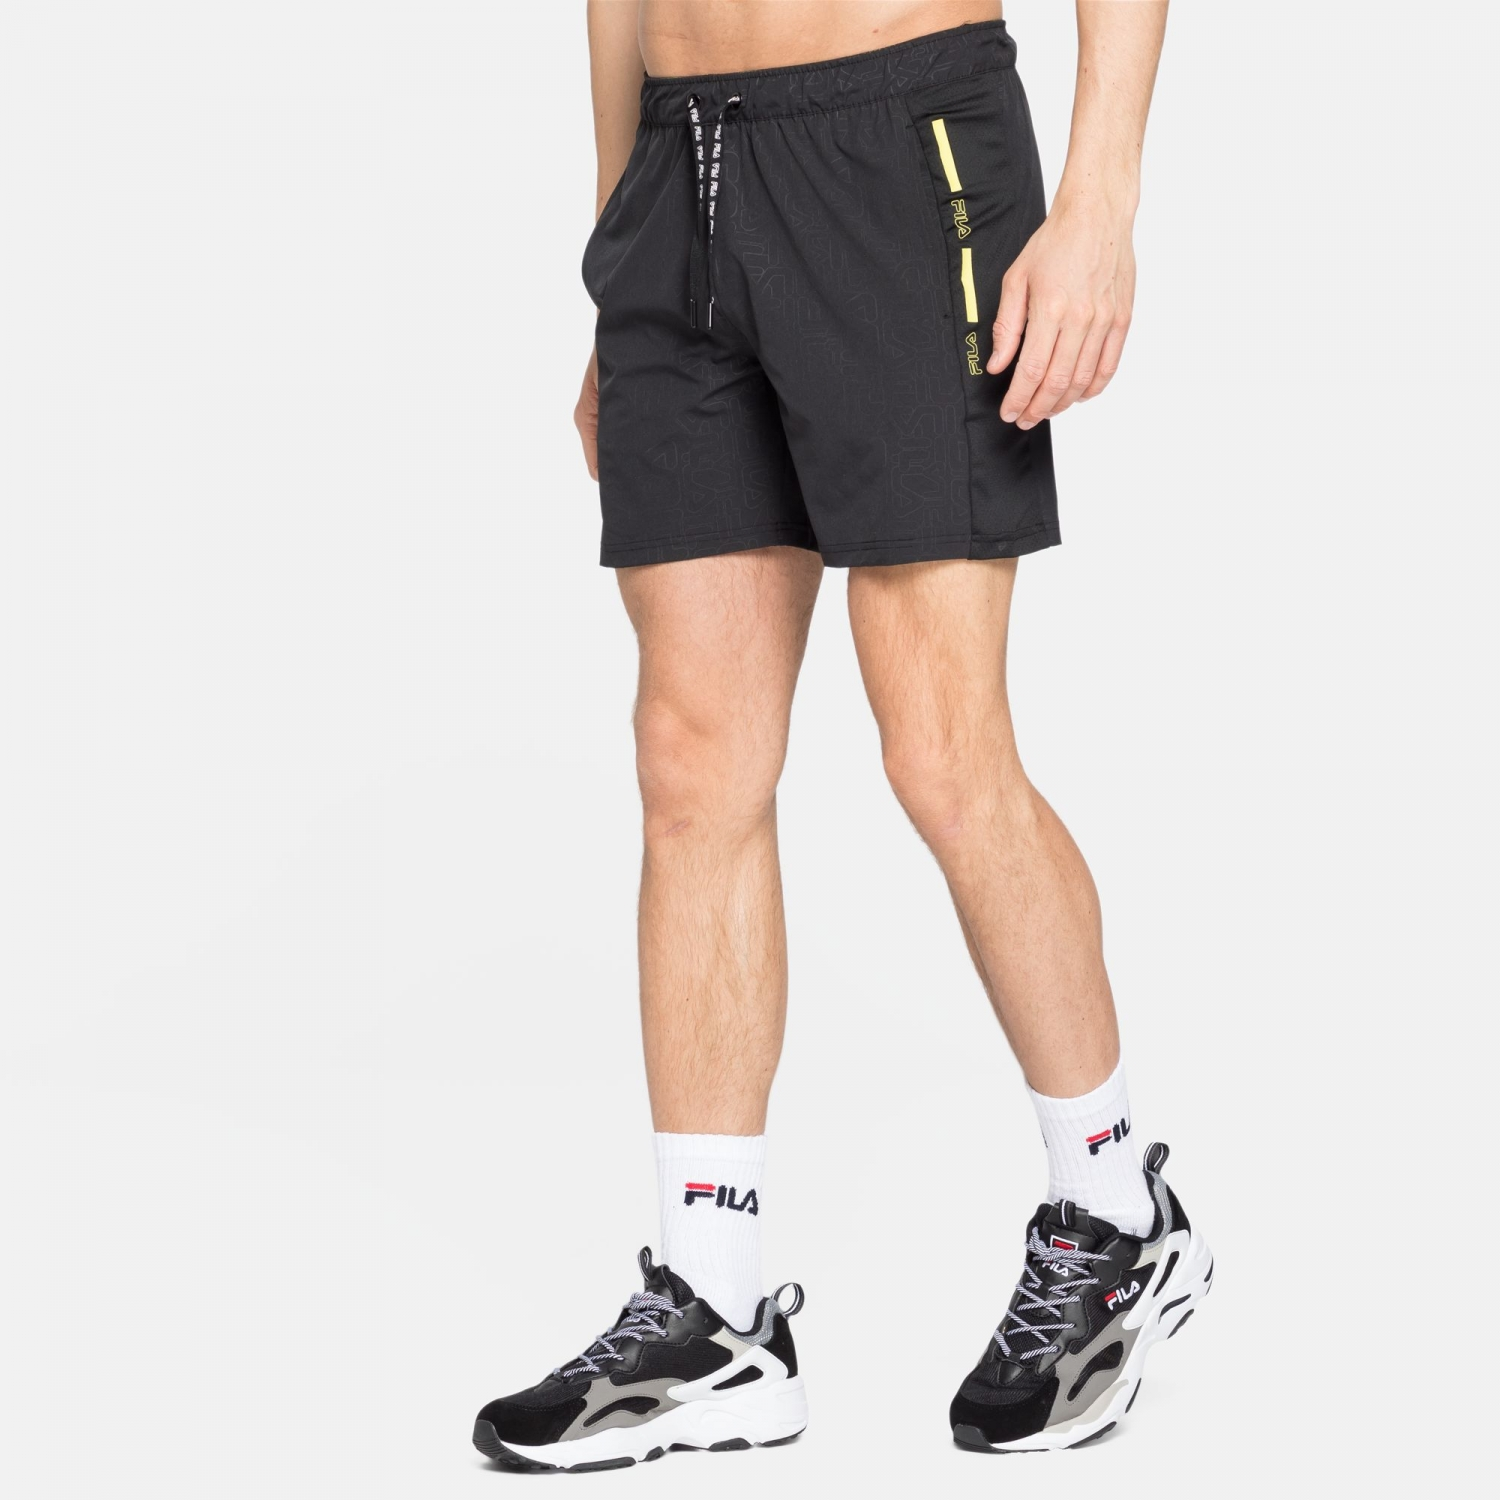 Fila Alick Shorts Bild 1